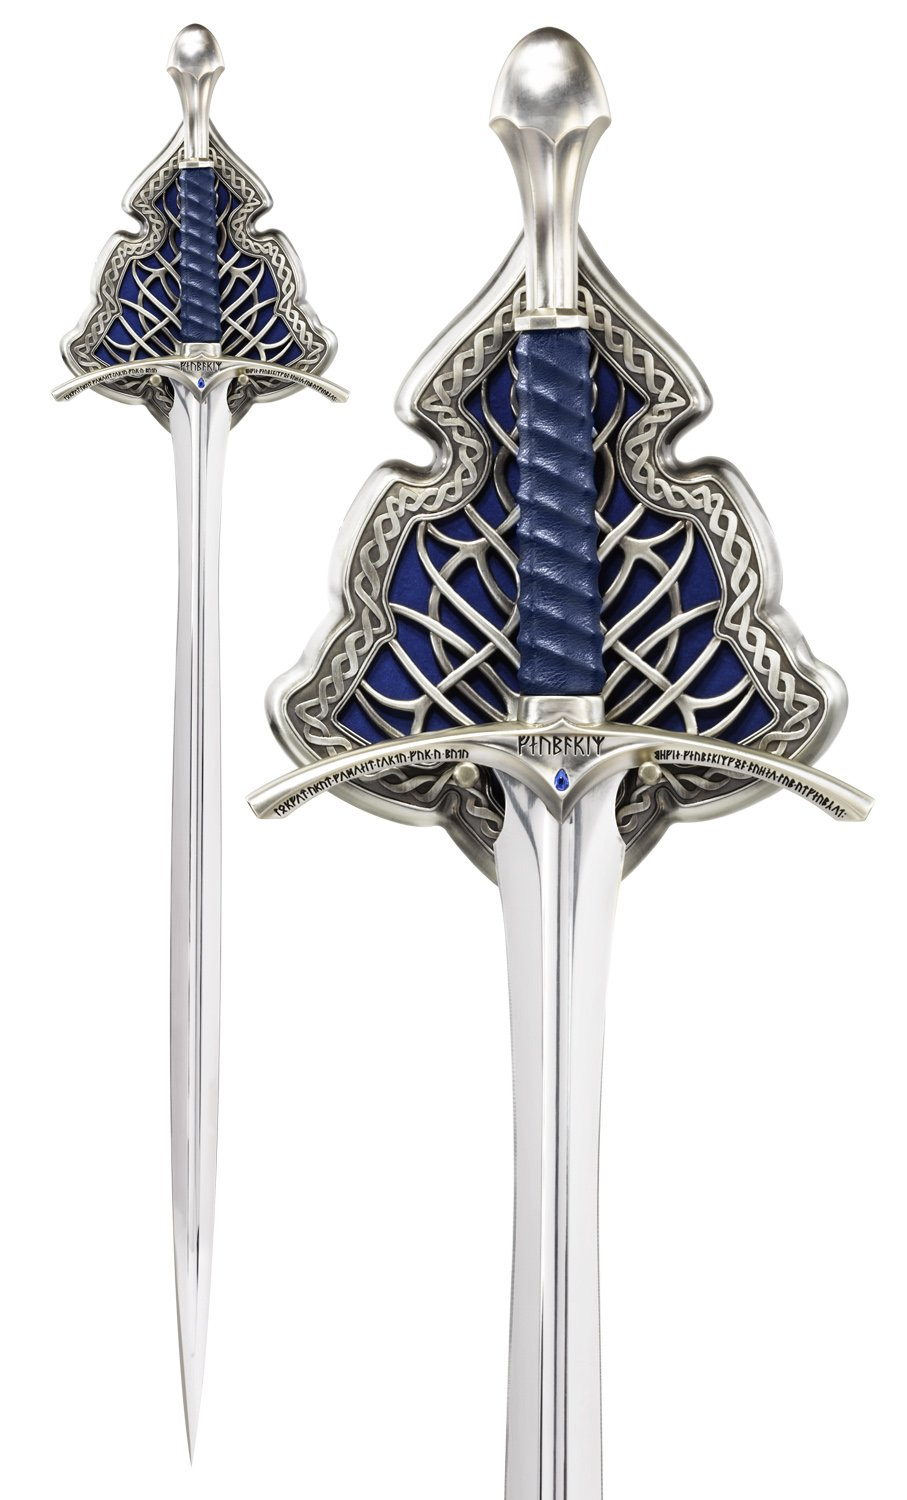 Lord of the Rings Glamdring Sword from The Hobbit Gandalf Swords